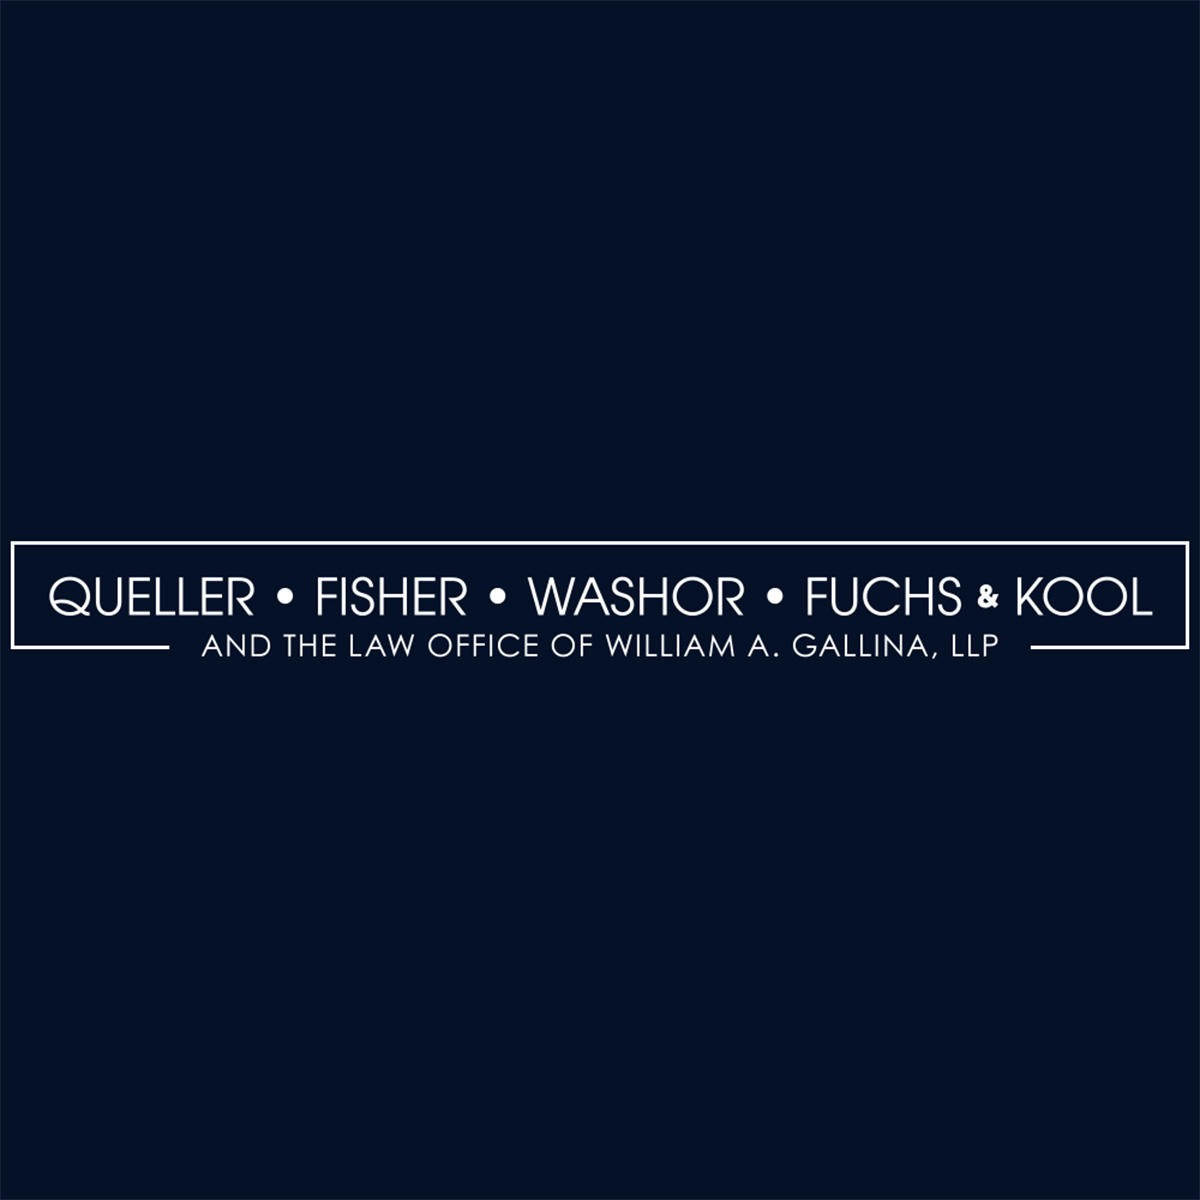 Queller, Fisher, Washor, Fuchs & Kool And The Law Office Of William A. Gallina, LLP